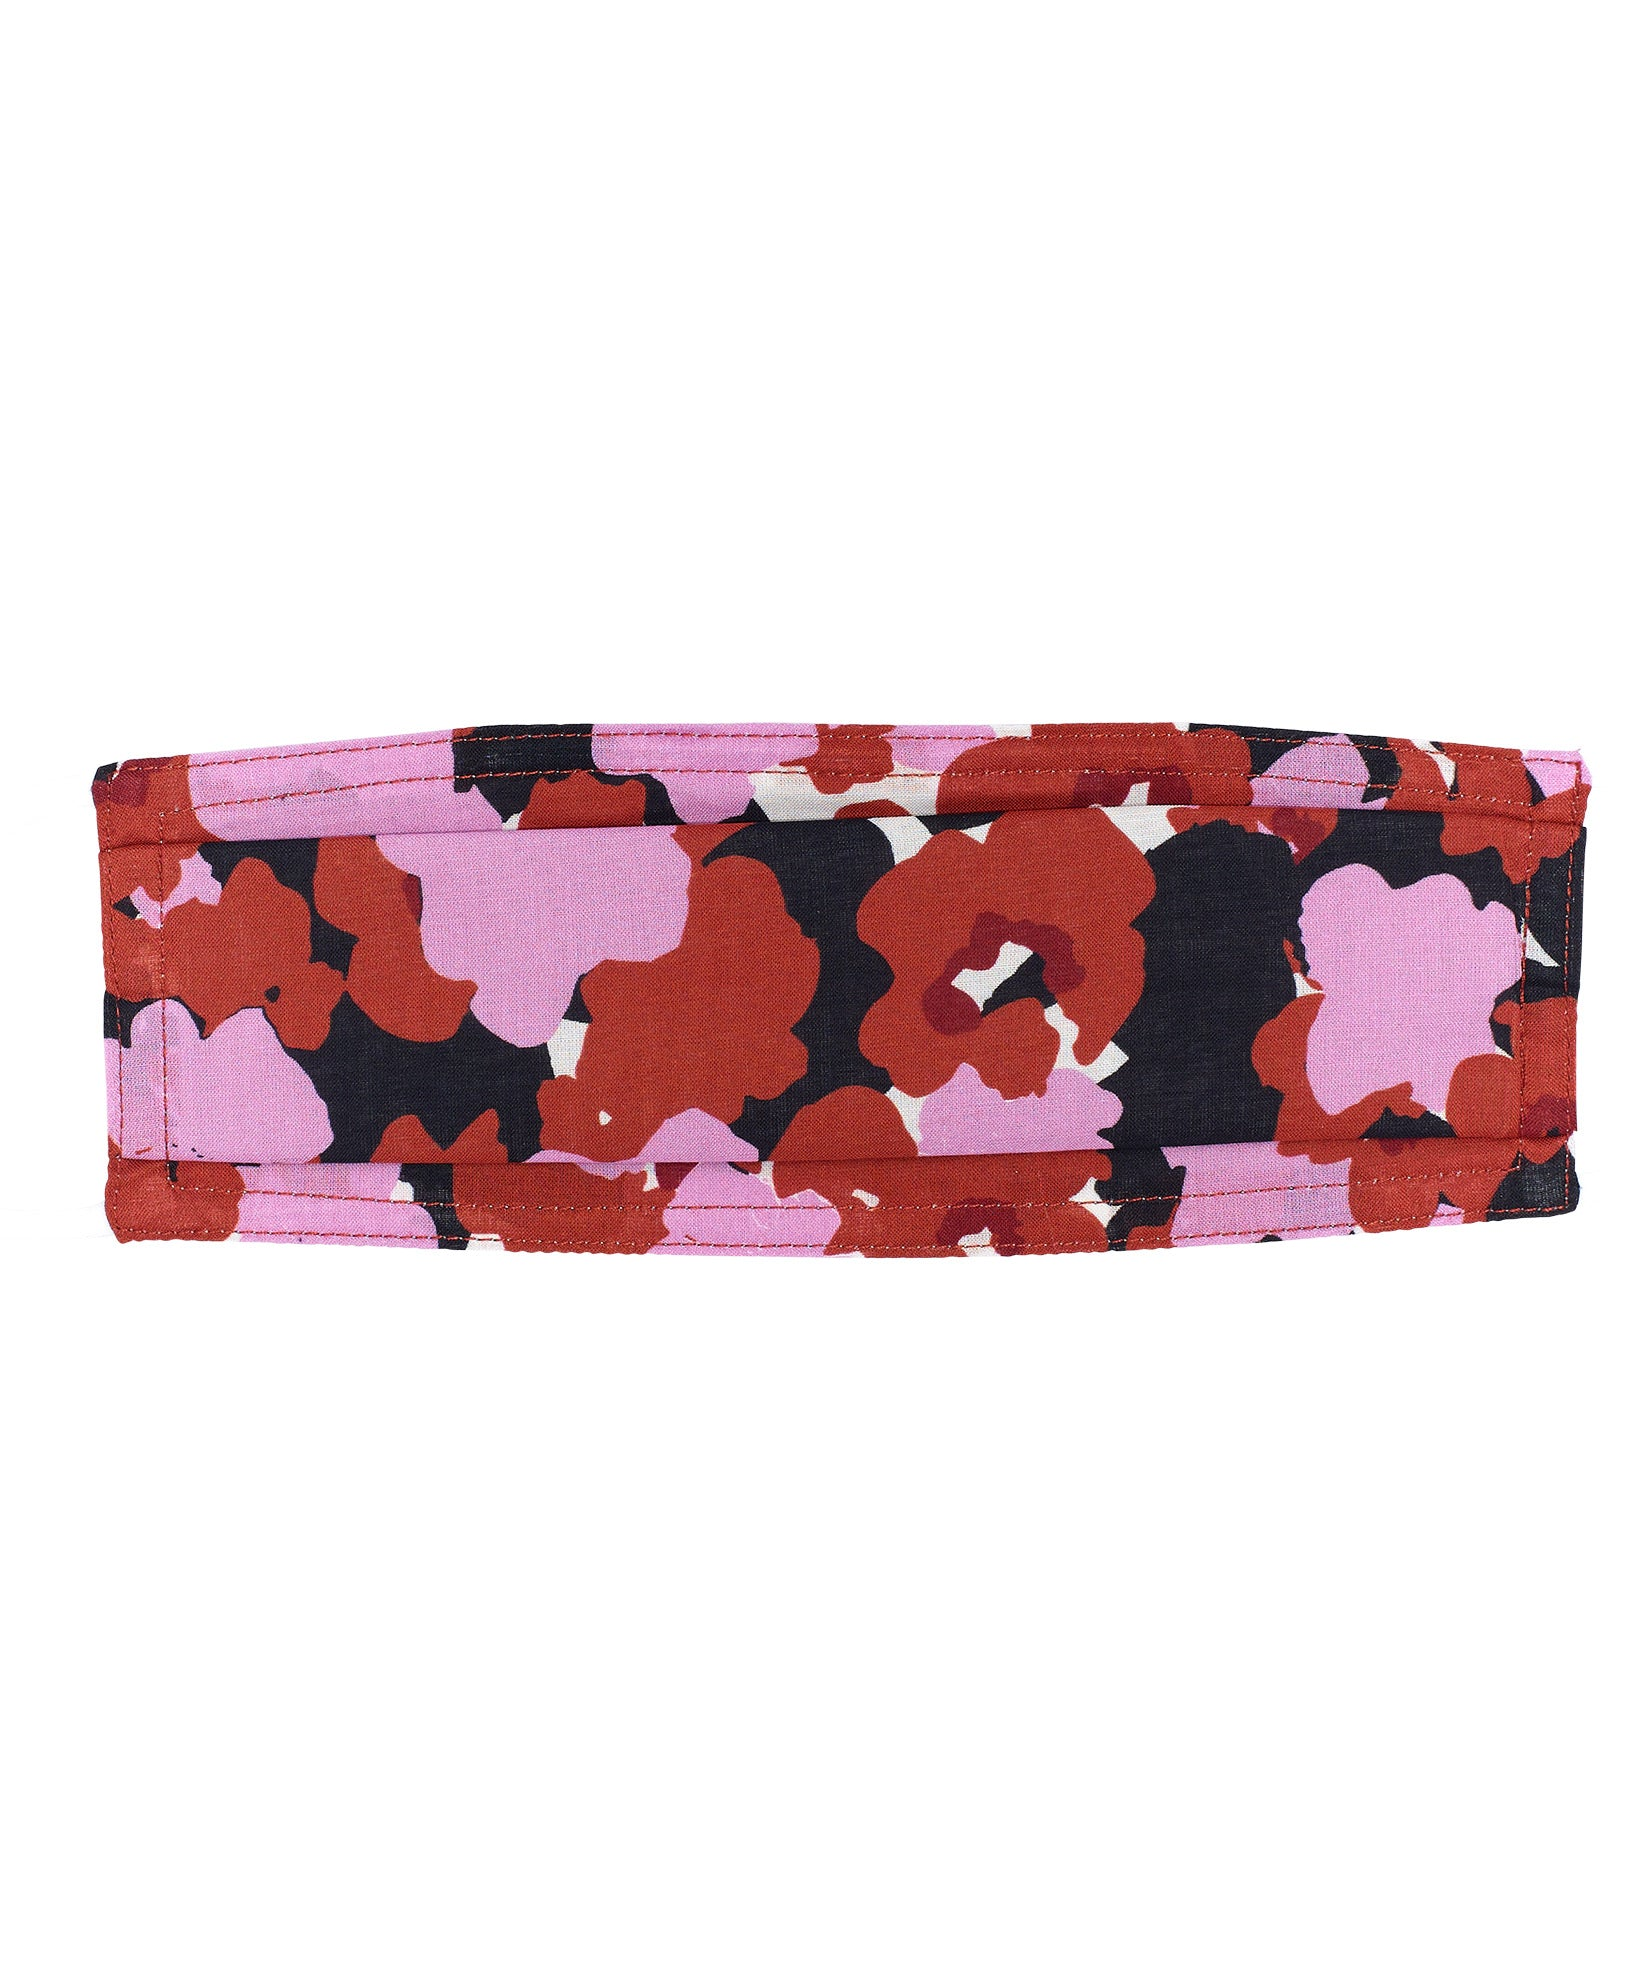 Rose - Floral Camo Cooling Mask w/Pocket